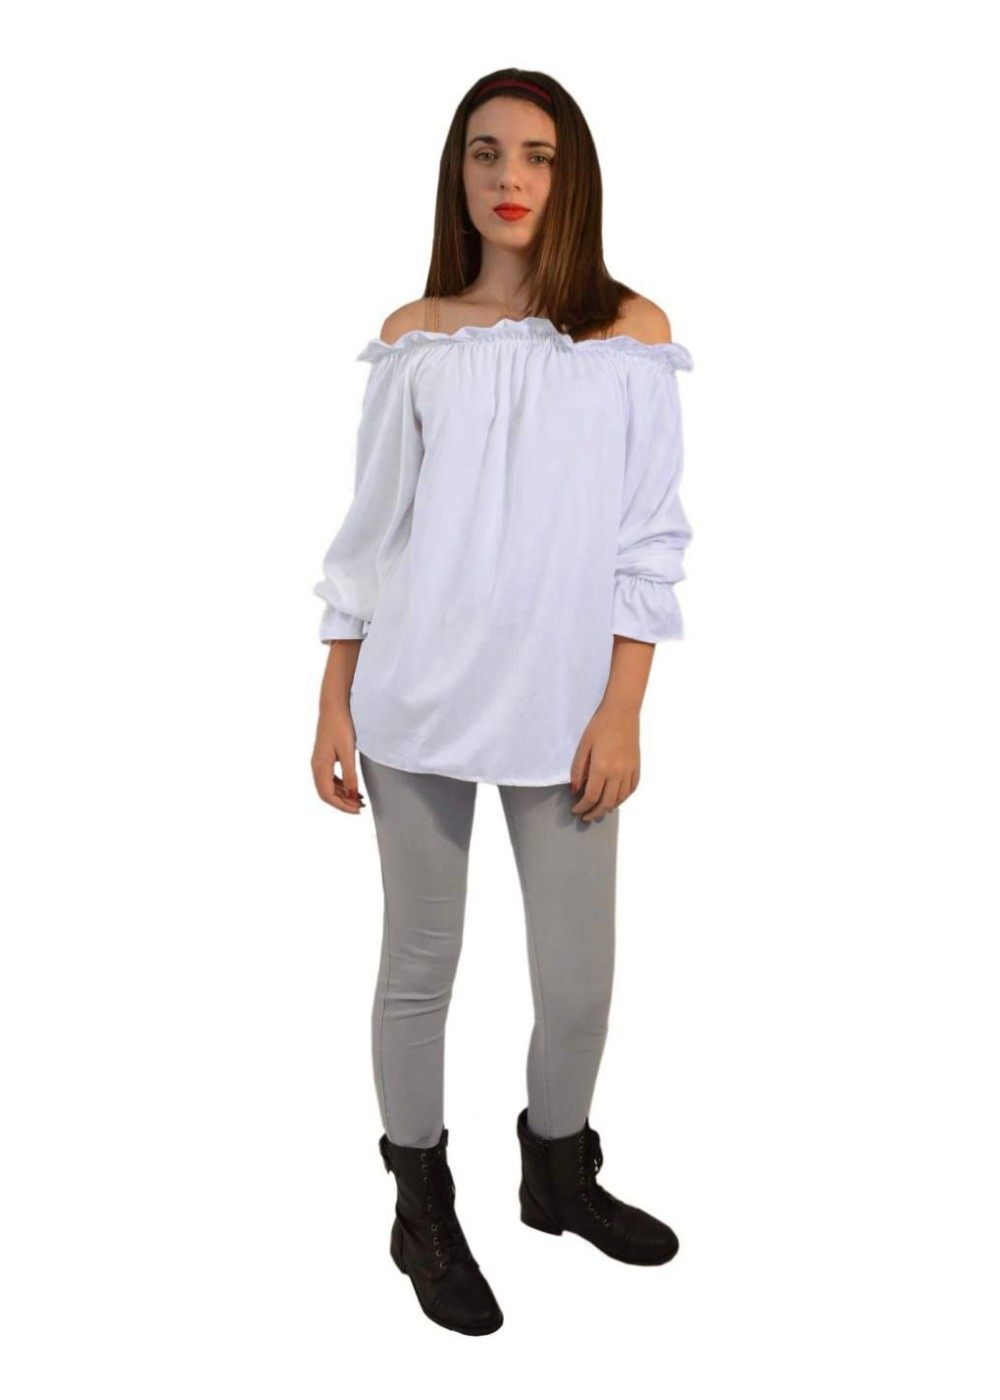 Renaissance Long Sleeve White Blouse Women Shirt